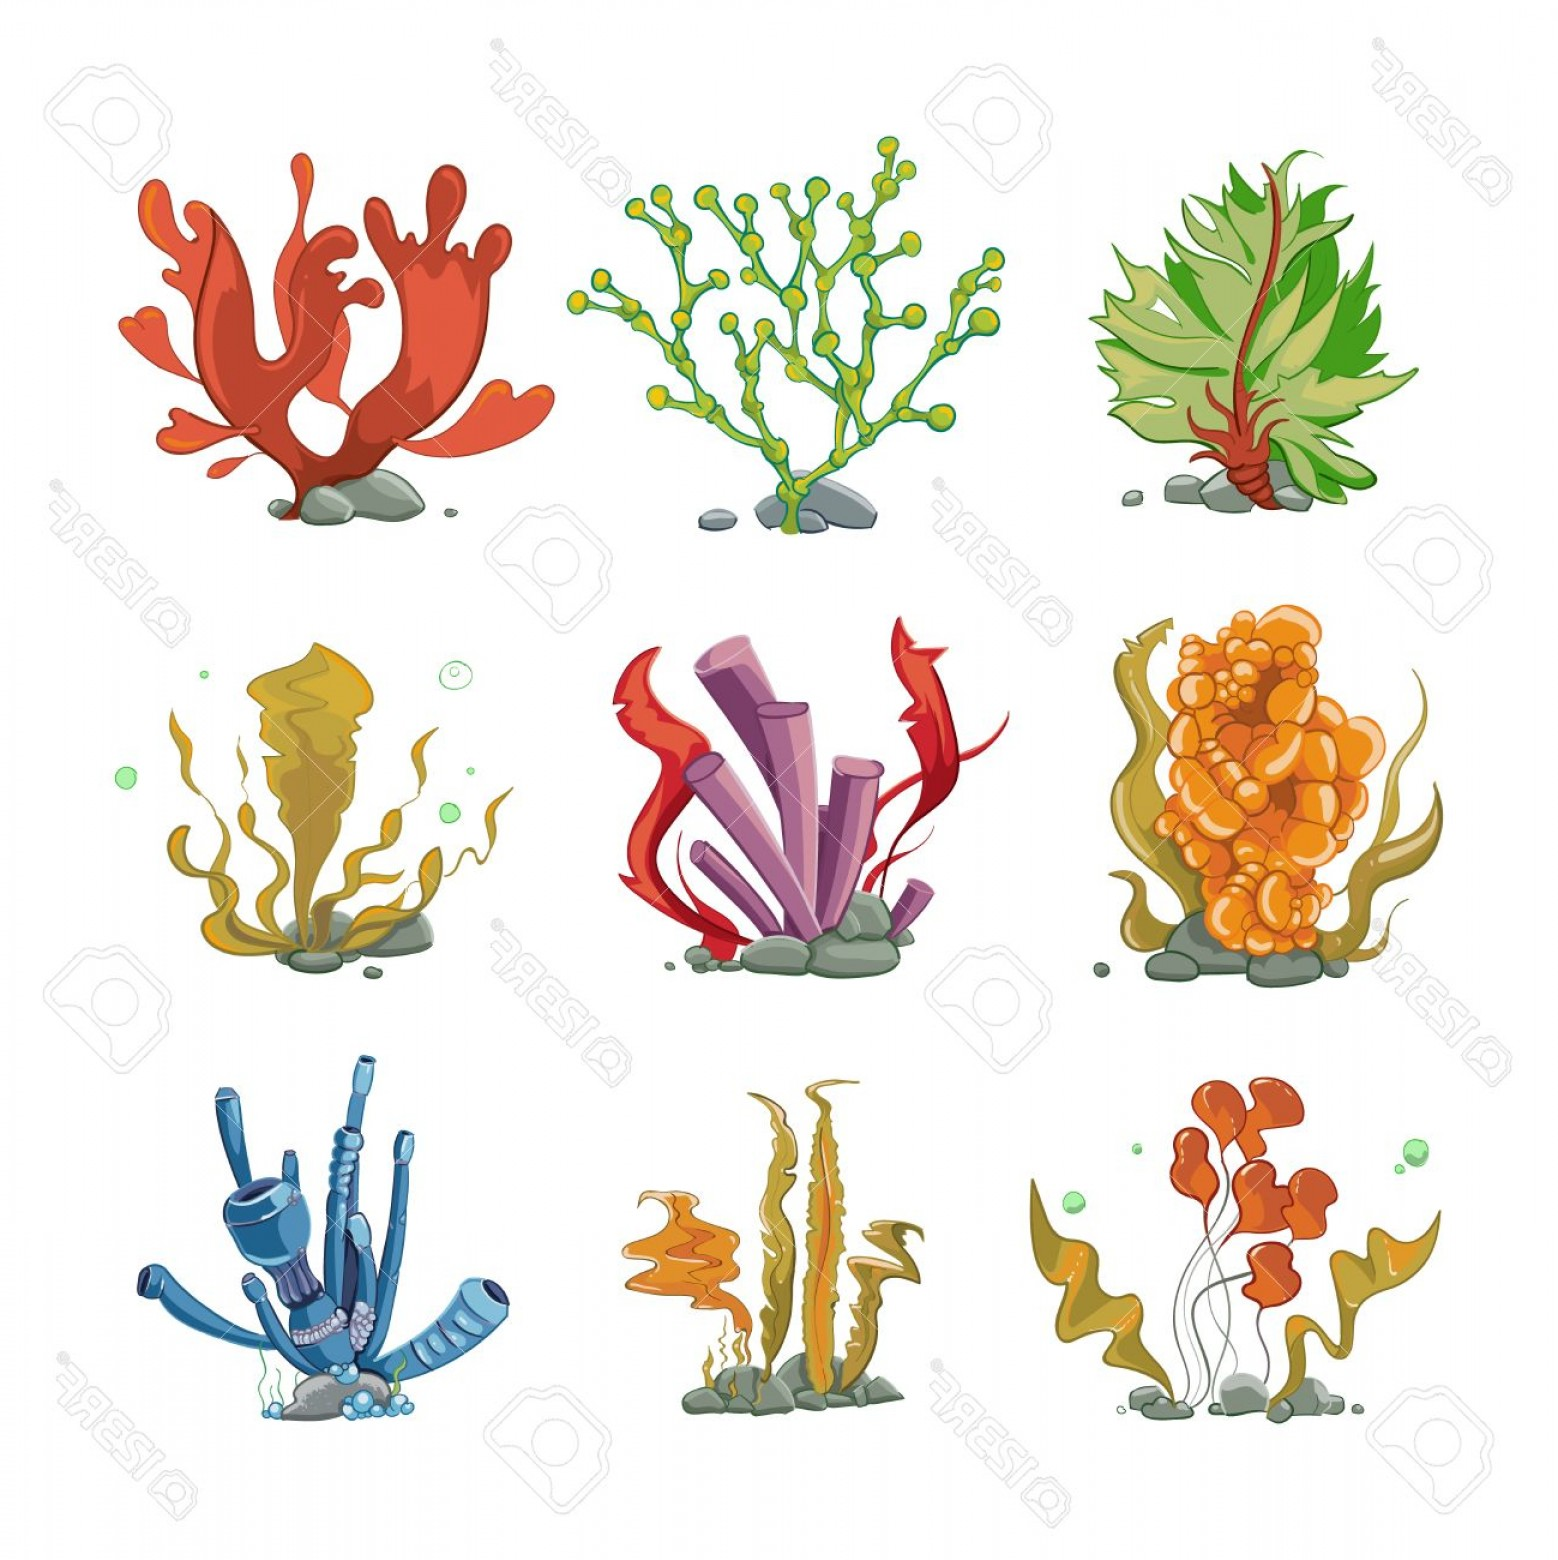 Underwater Sea Vector Art: Photostock Vector Underwater Plants In Cartoon Vector Style Ocean Life Underwater Sea Nature Seaweed Illustration